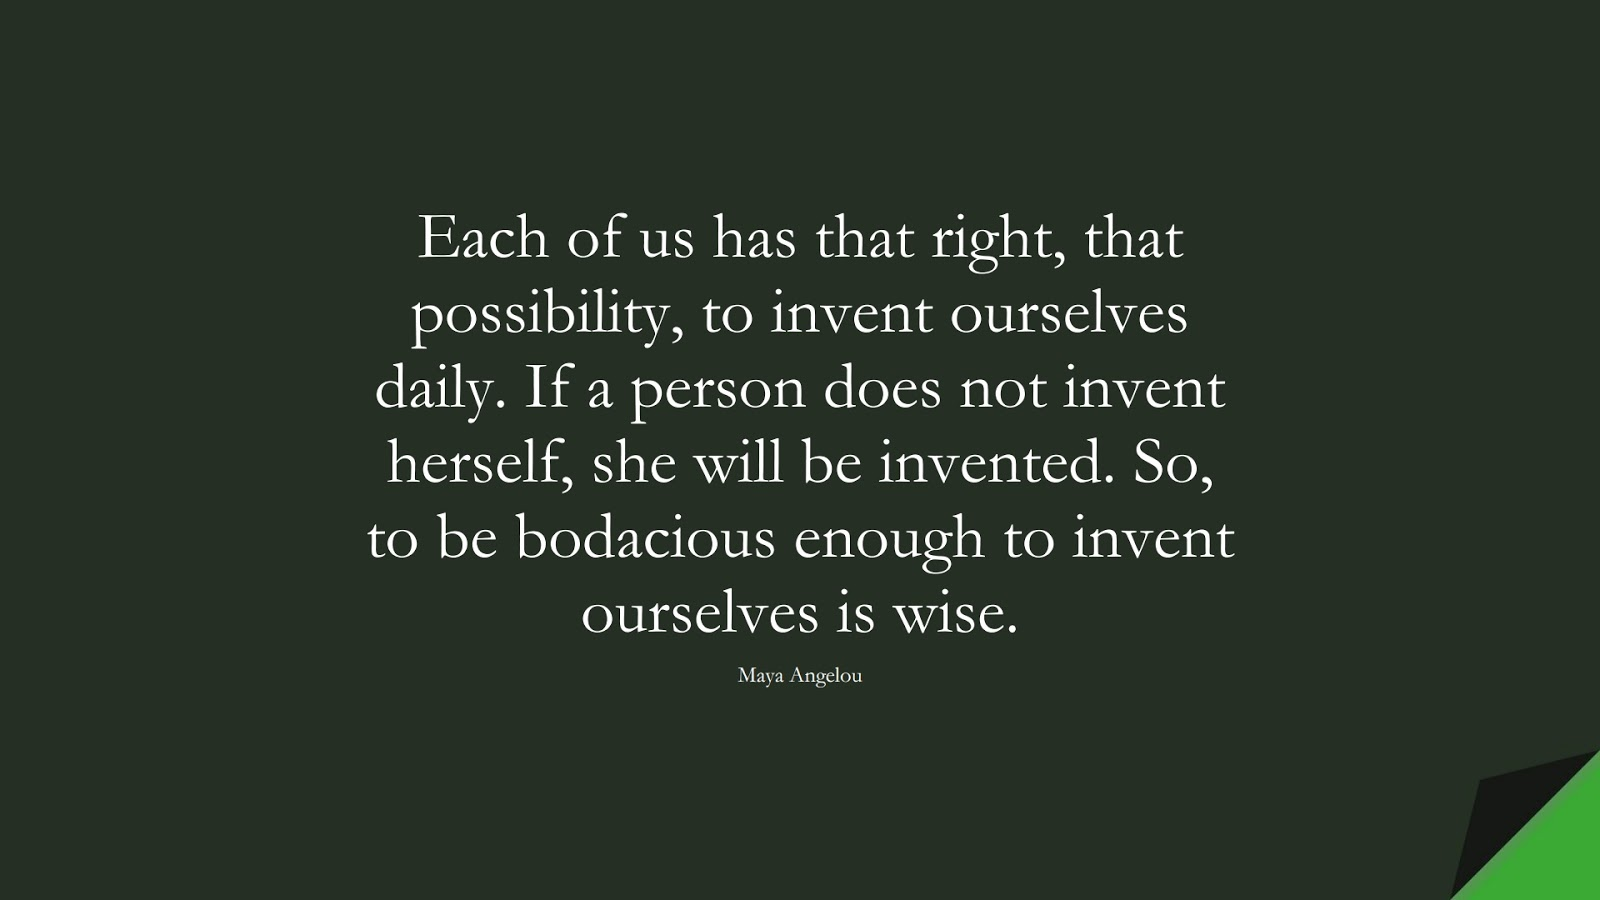 Each of us has that right, that possibility, to invent ourselves daily. If a person does not invent herself, she will be invented. So, to be bodacious enough to invent ourselves is wise. (Maya Angelou);  #MayaAngelouQuotes